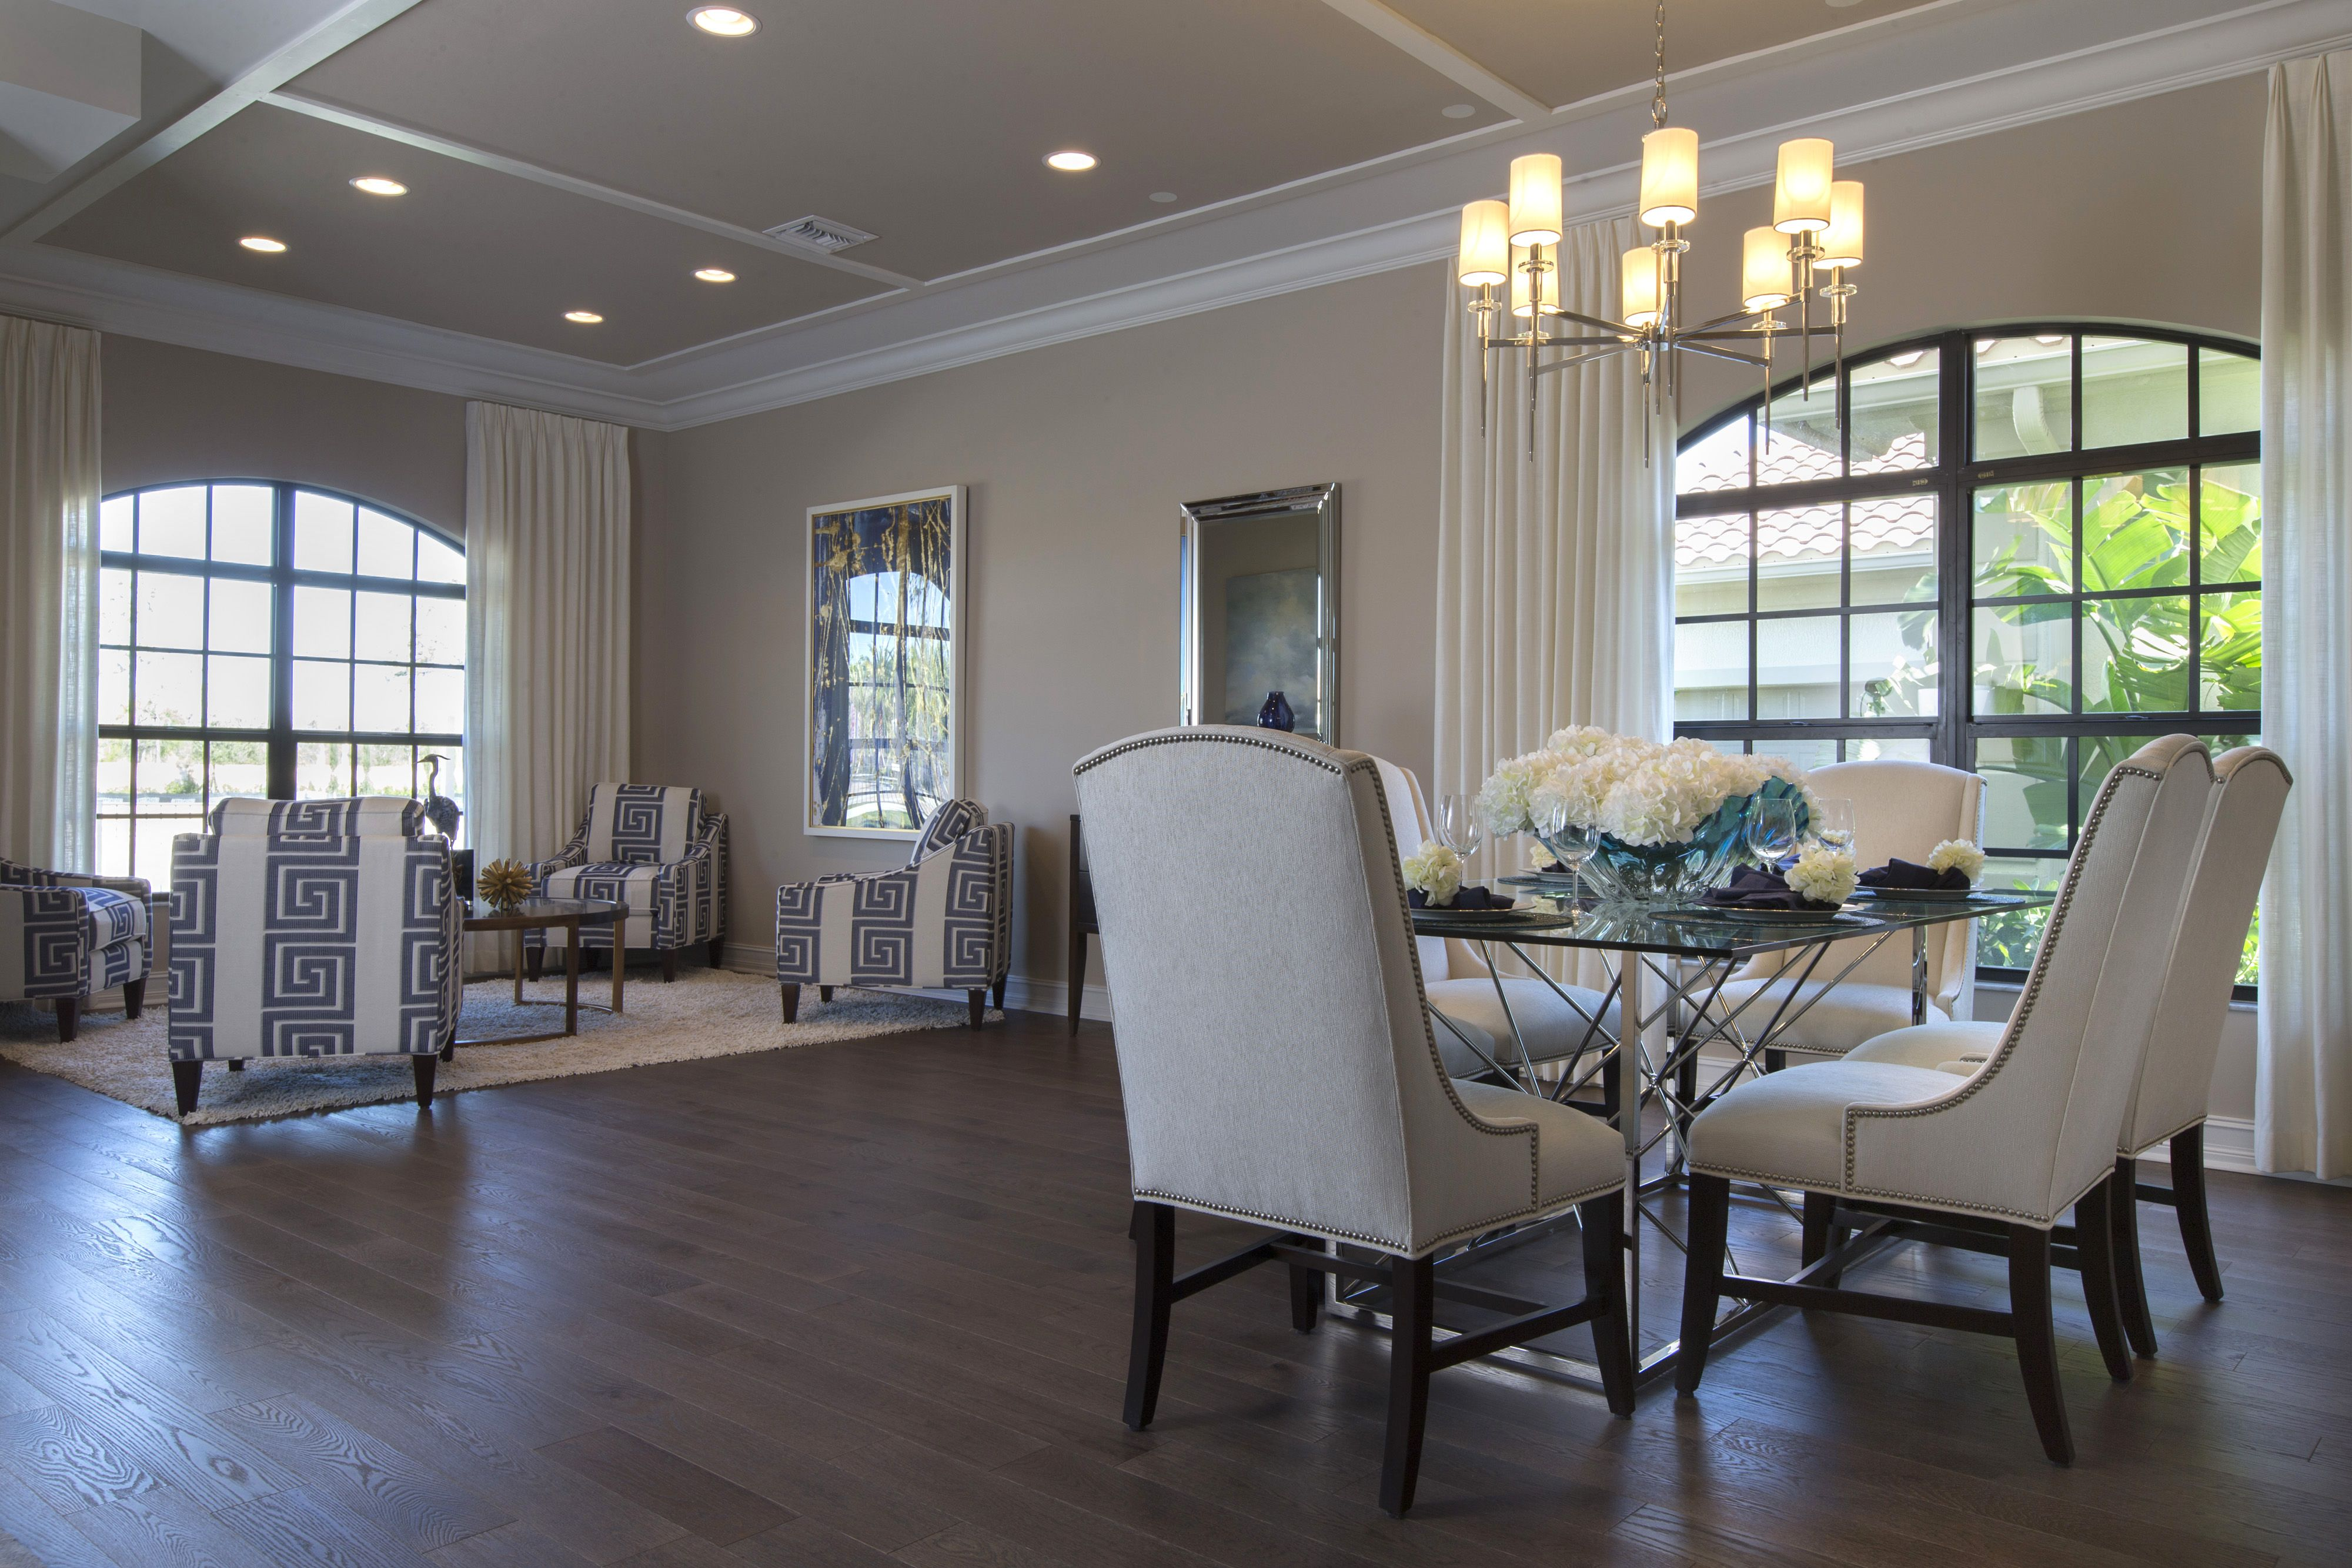 Pin By Robb  Stucky On Interiors By Robb  Stucky Pinterest - Model home interior design